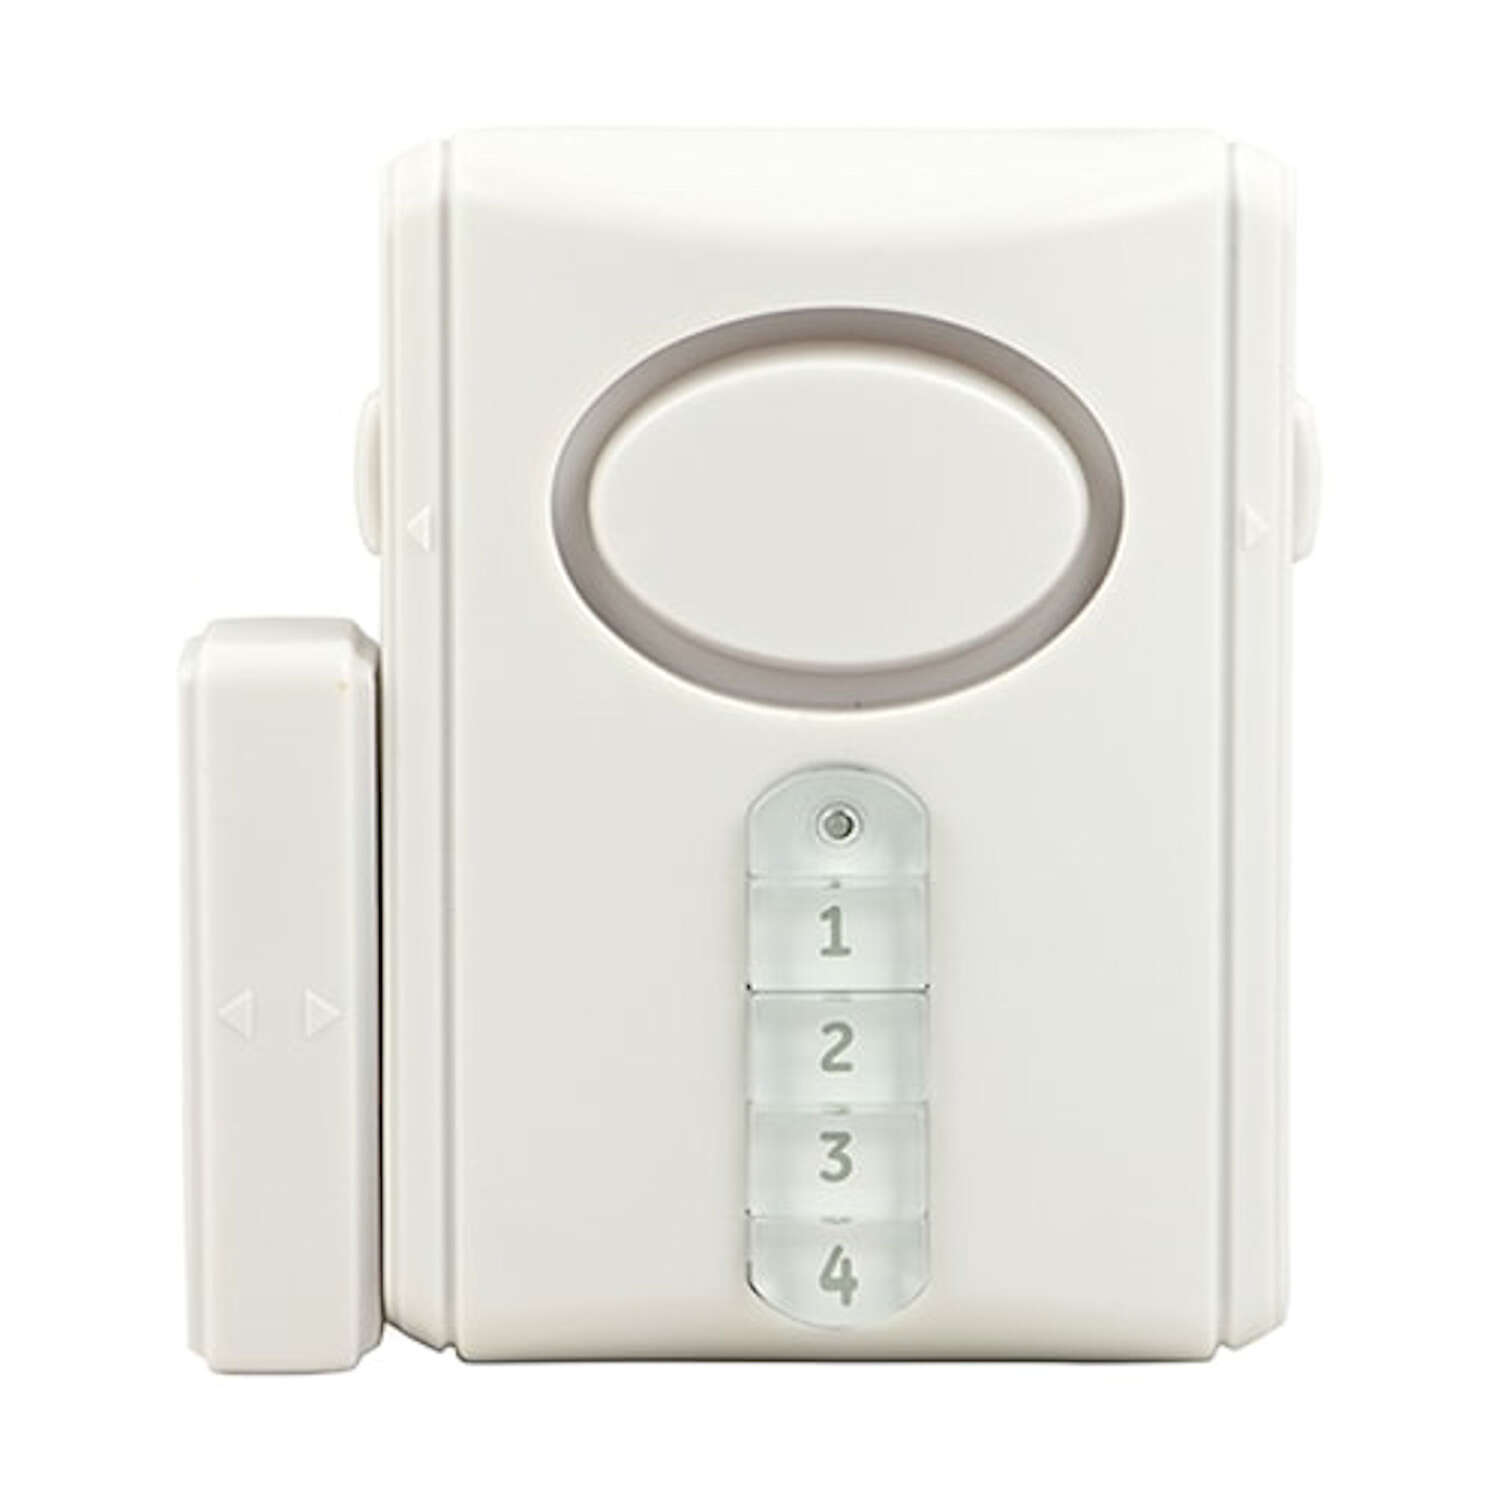 GE Keypad Controlled Door Alarm Battery 120 dB 1.5 cm Carded